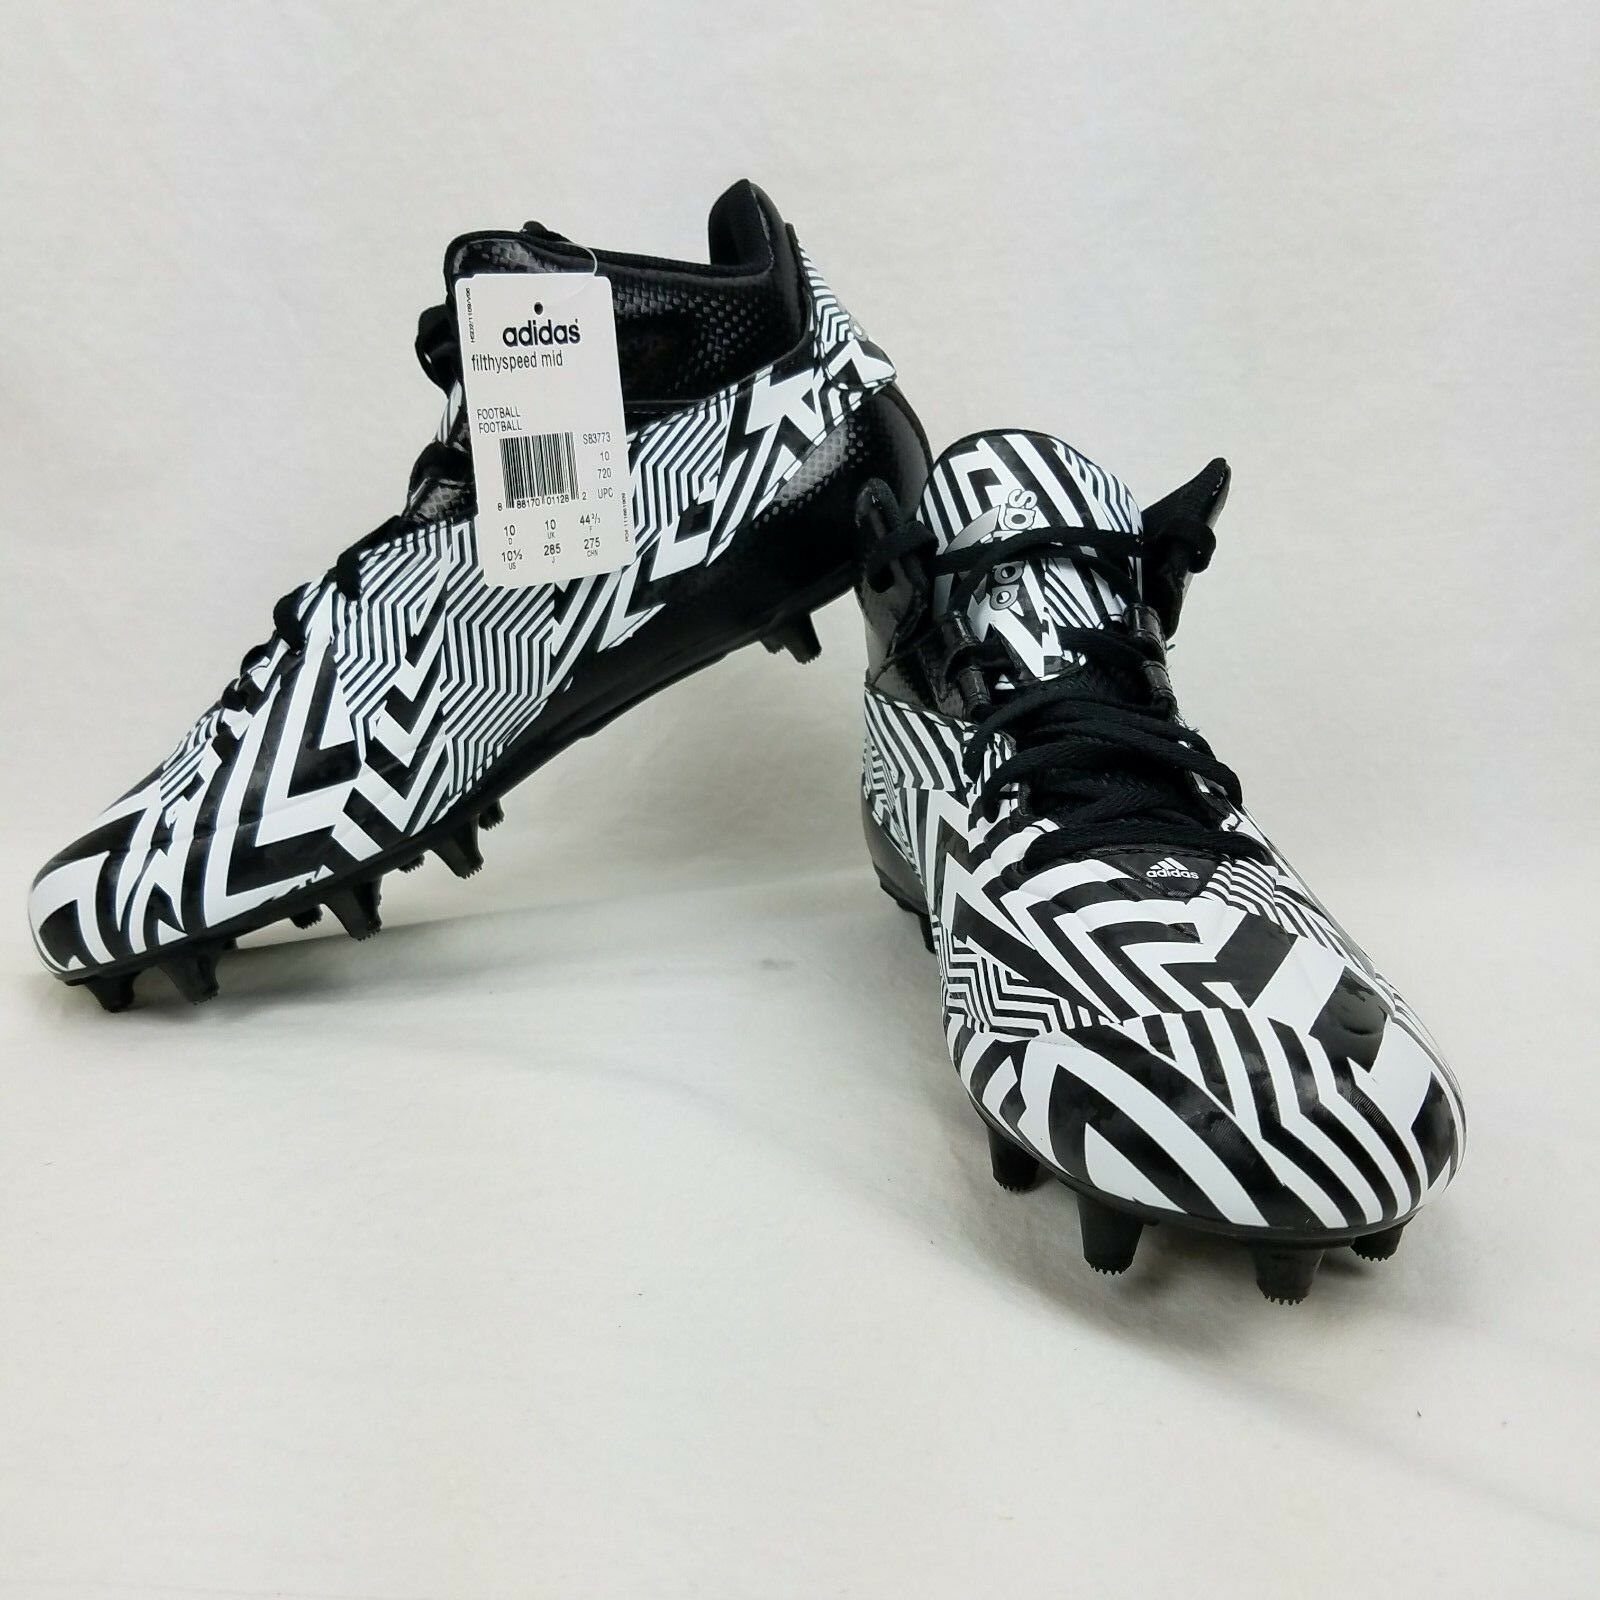 Adidas filthyspeed mid Black/Platinum Cleats Mens New Athletic Shoes Size 10.5 New Mens 4bfdb6